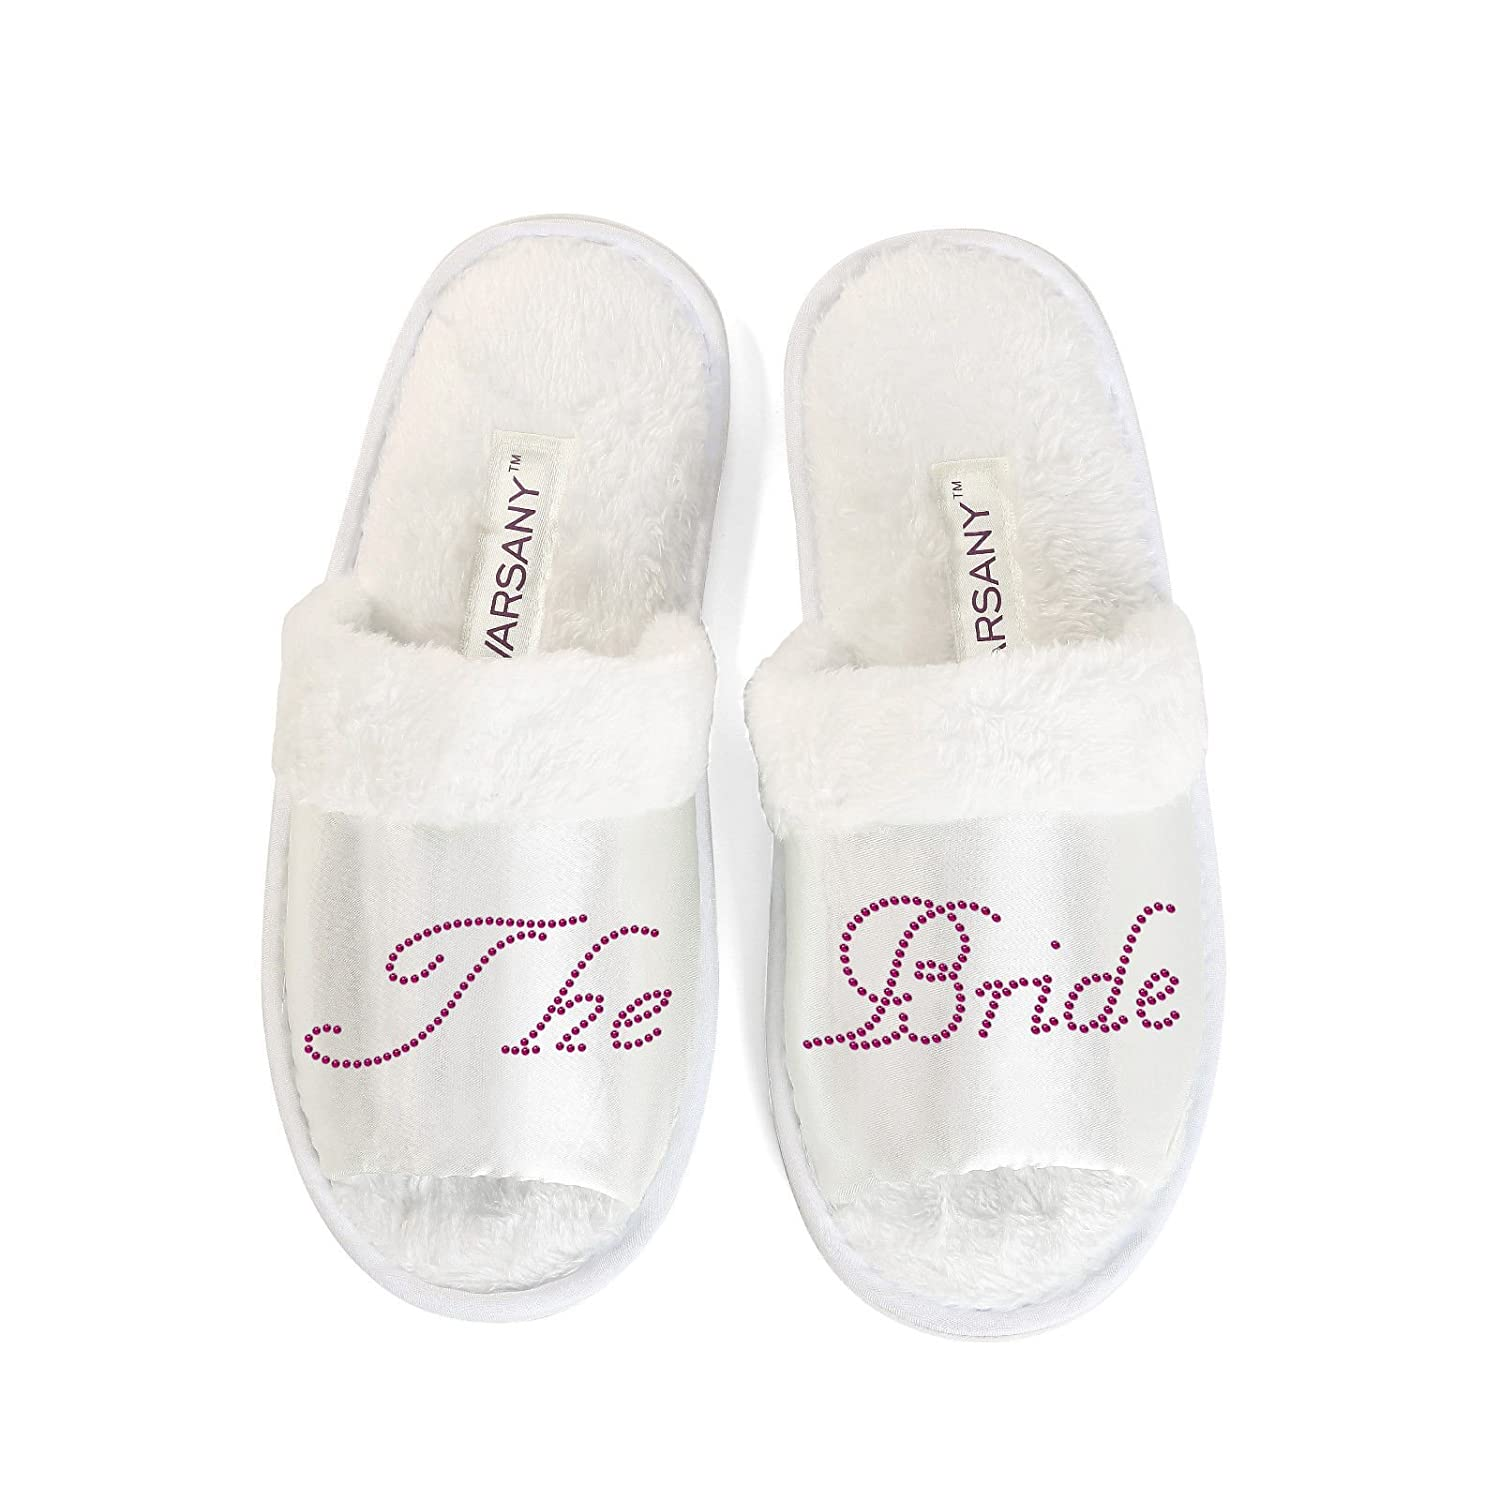 New Clear Grooms Mother Slippers Bride Bridesmaid Spa Hen Weekends Wedding Gift By Varsany OT